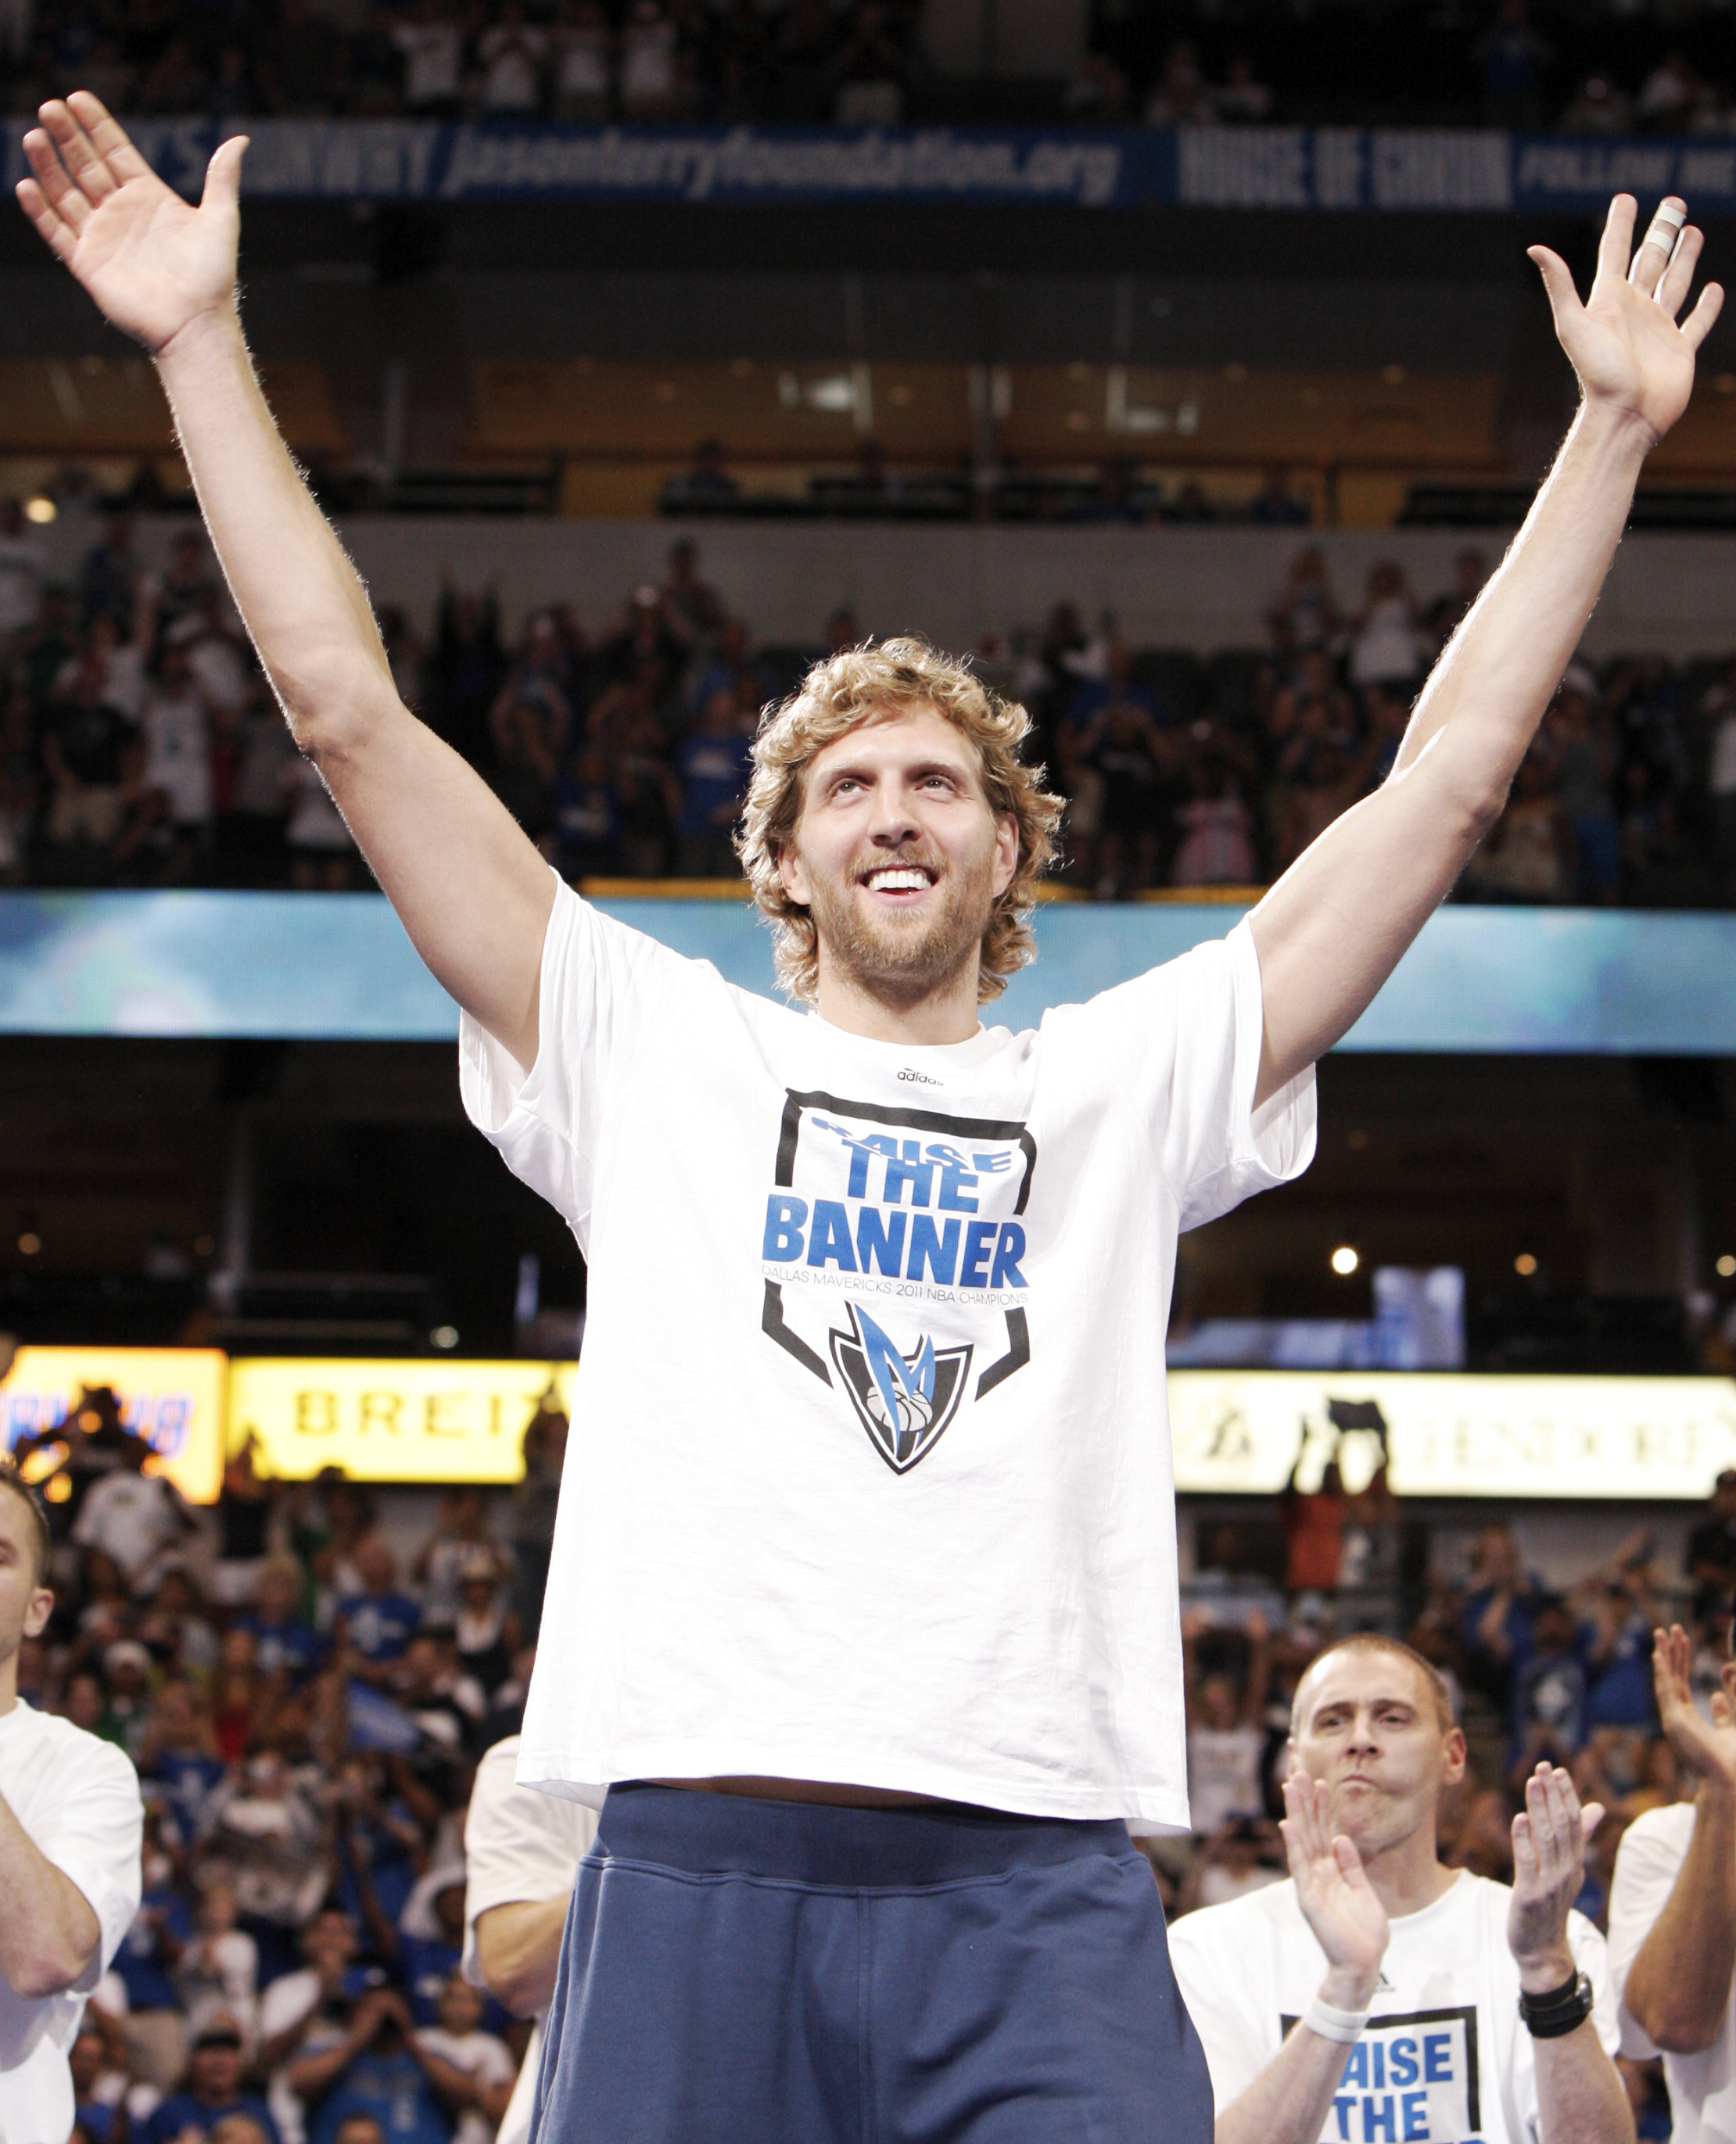 DALLAS, TX - JUNE 16: Forward Dirk Nowitzki of the Dallas Mavericks waves to fans during the Dallas Mavericks Victory celebration on June 16, 2011 in Dallas, Texas. (Photo by Brandon Wade/Getty Images)